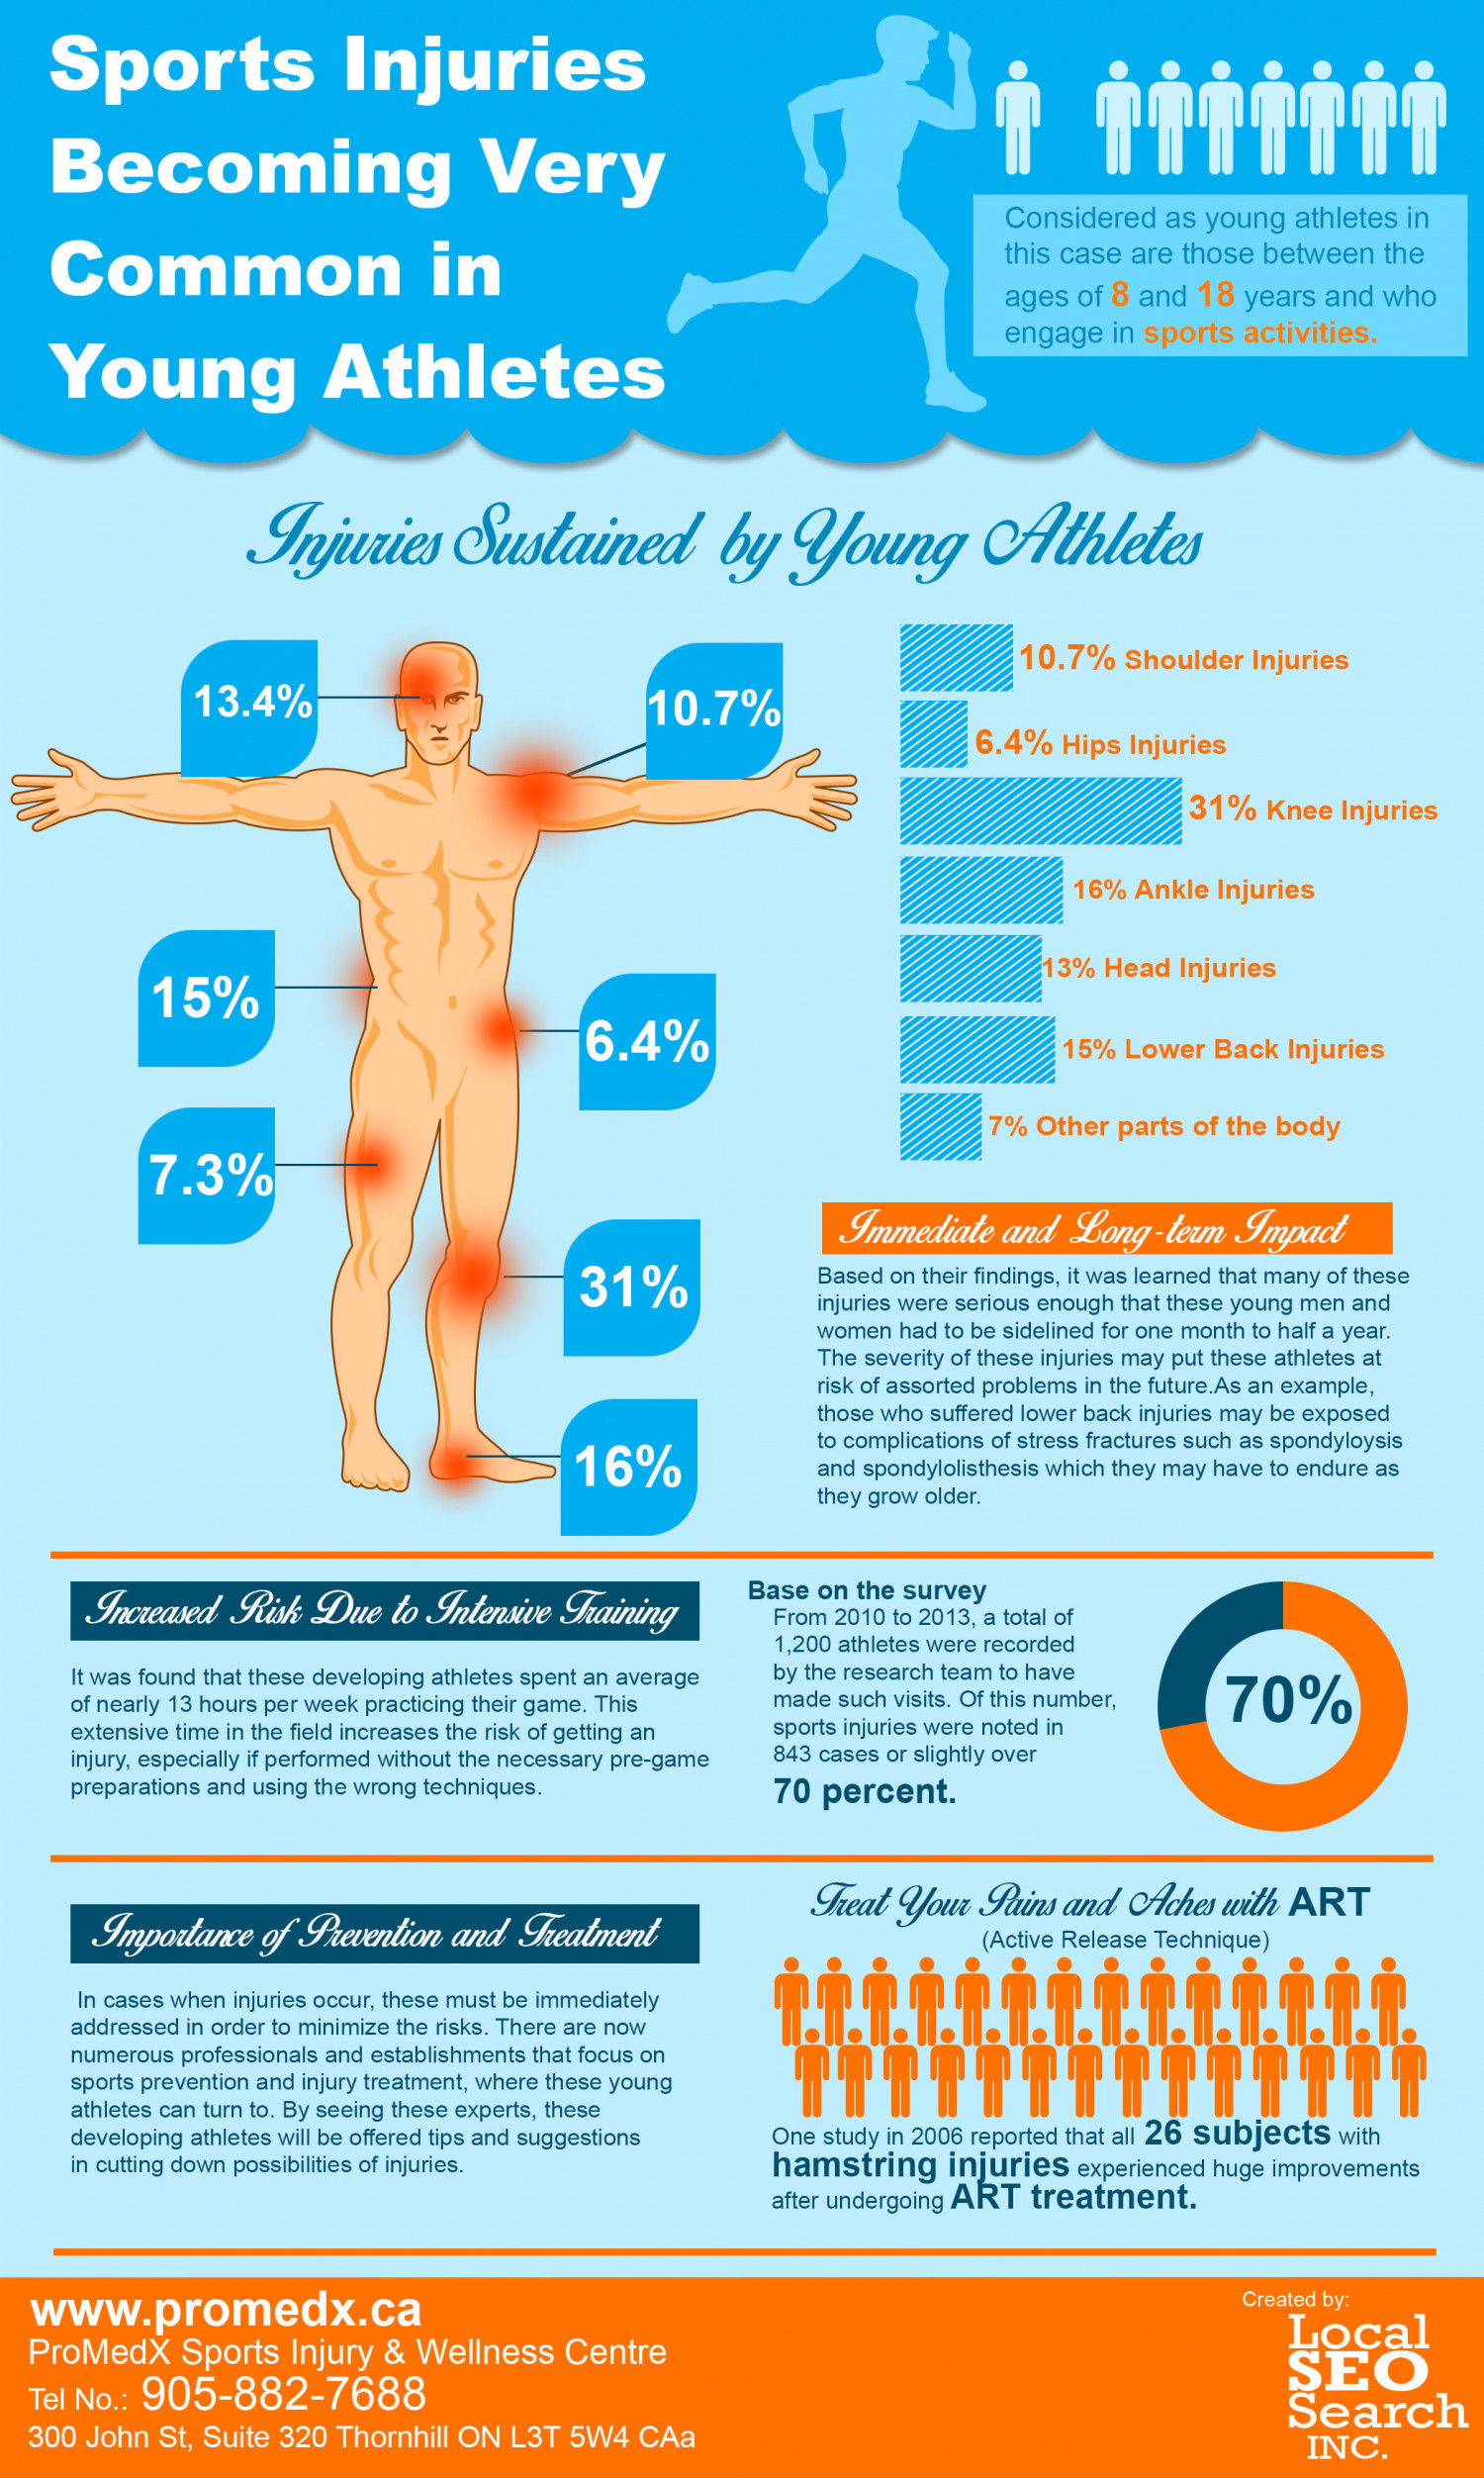 Sports Injuries Becoming Common in Young Athletes Infographic